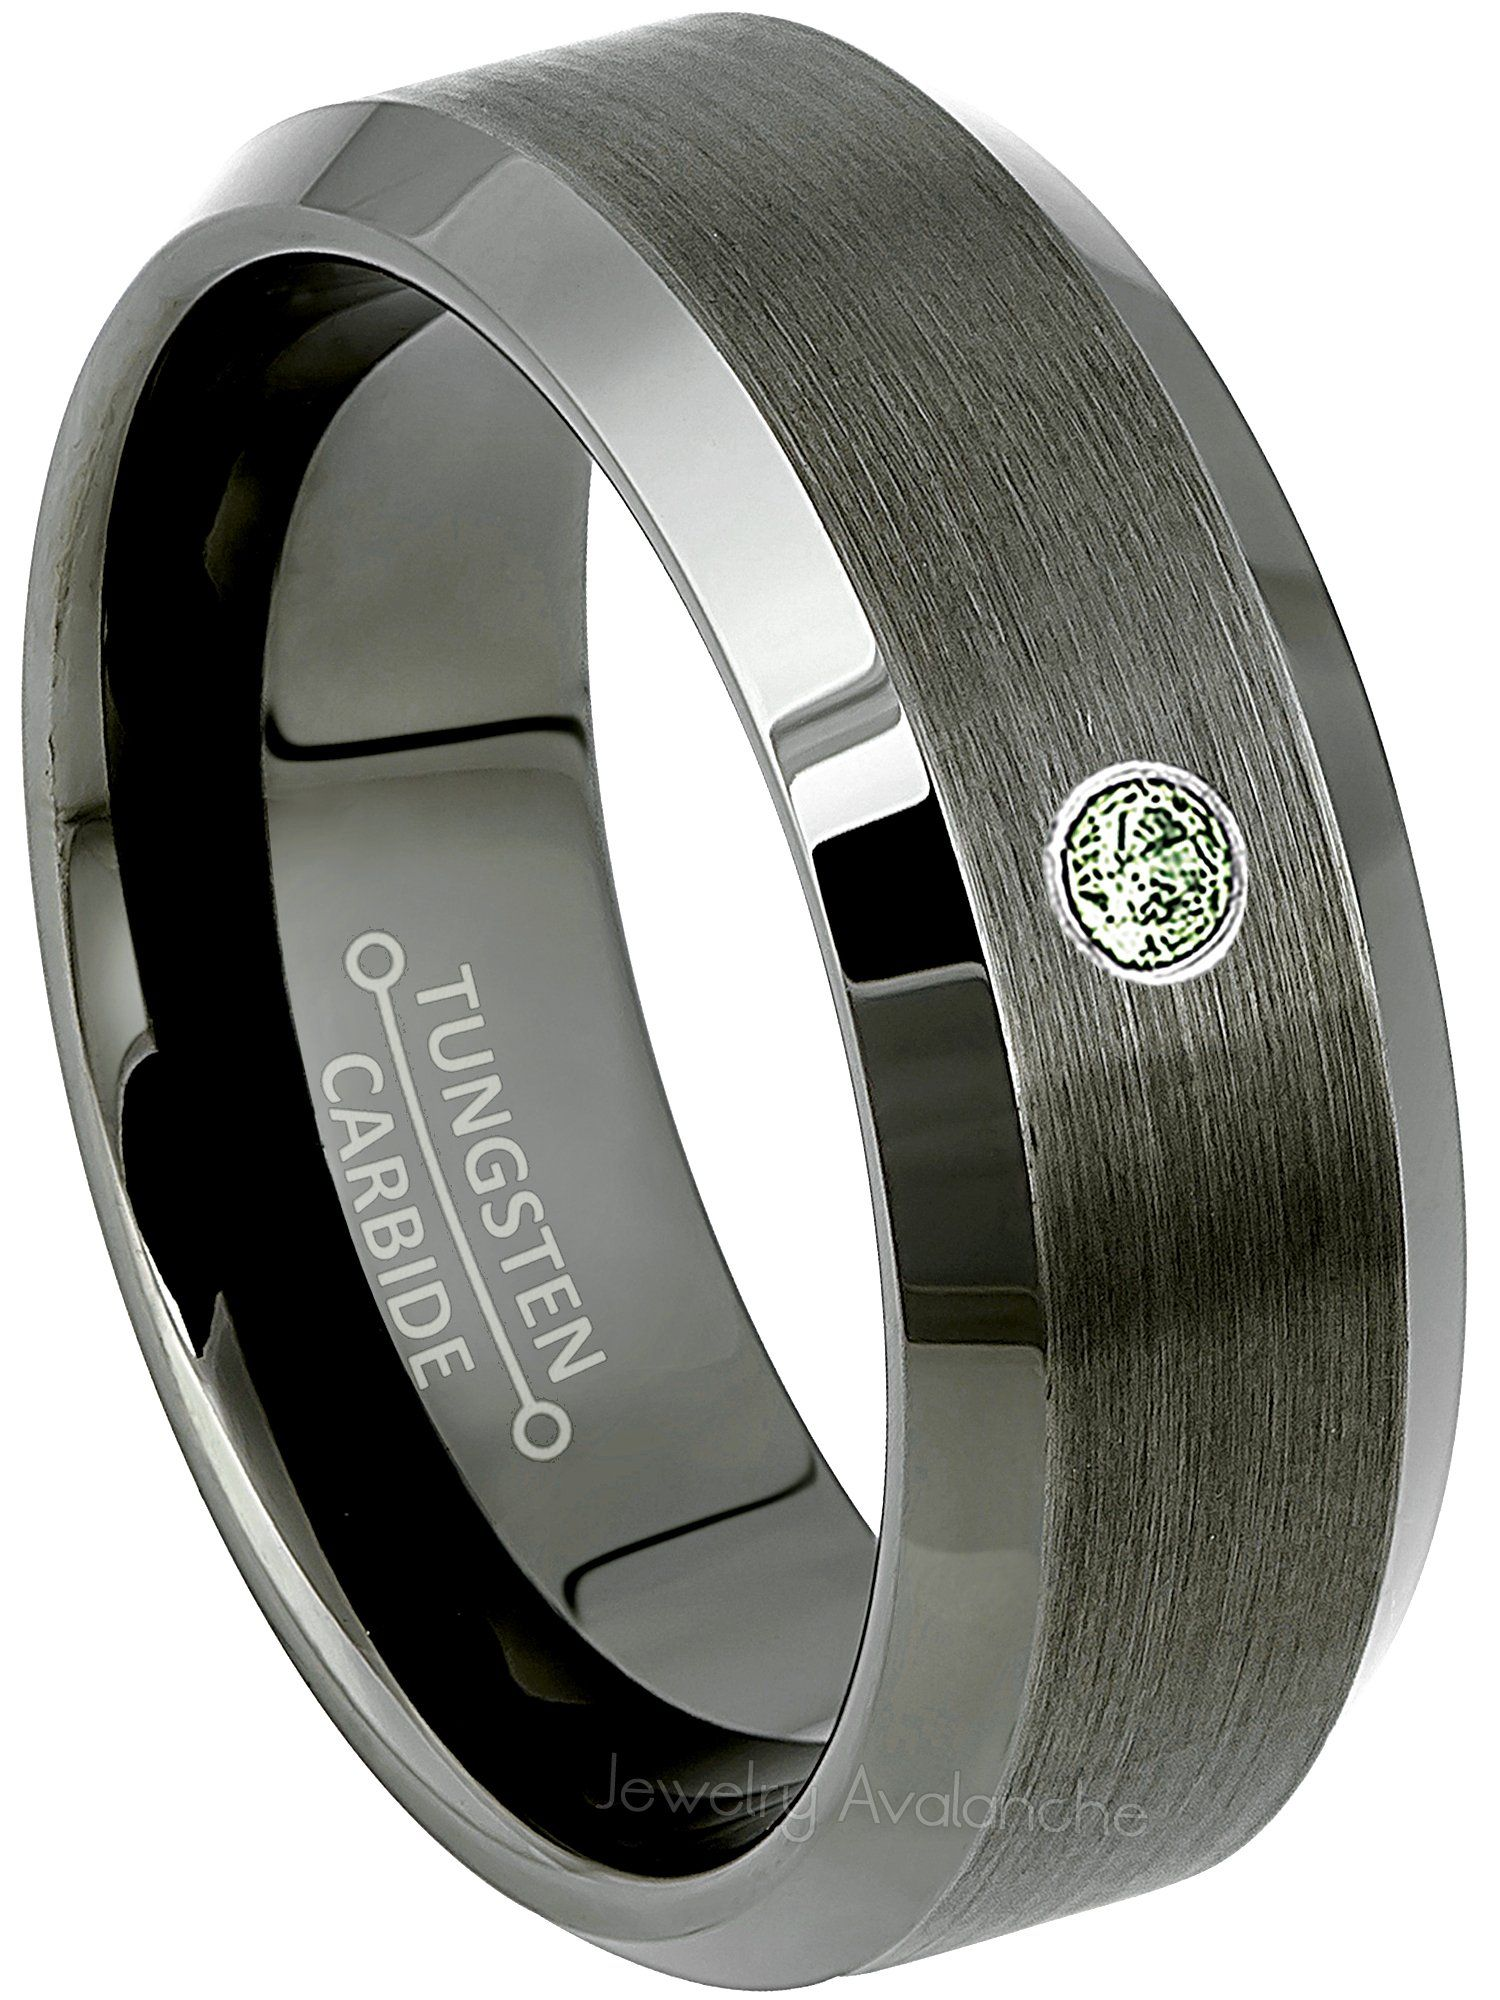 Jewelry Avalanche 8MM Comfort Fit Brushed with Grooved Edge Cobalt Chrome Wedding Band 0.07ct Diamond Cobalt Ring